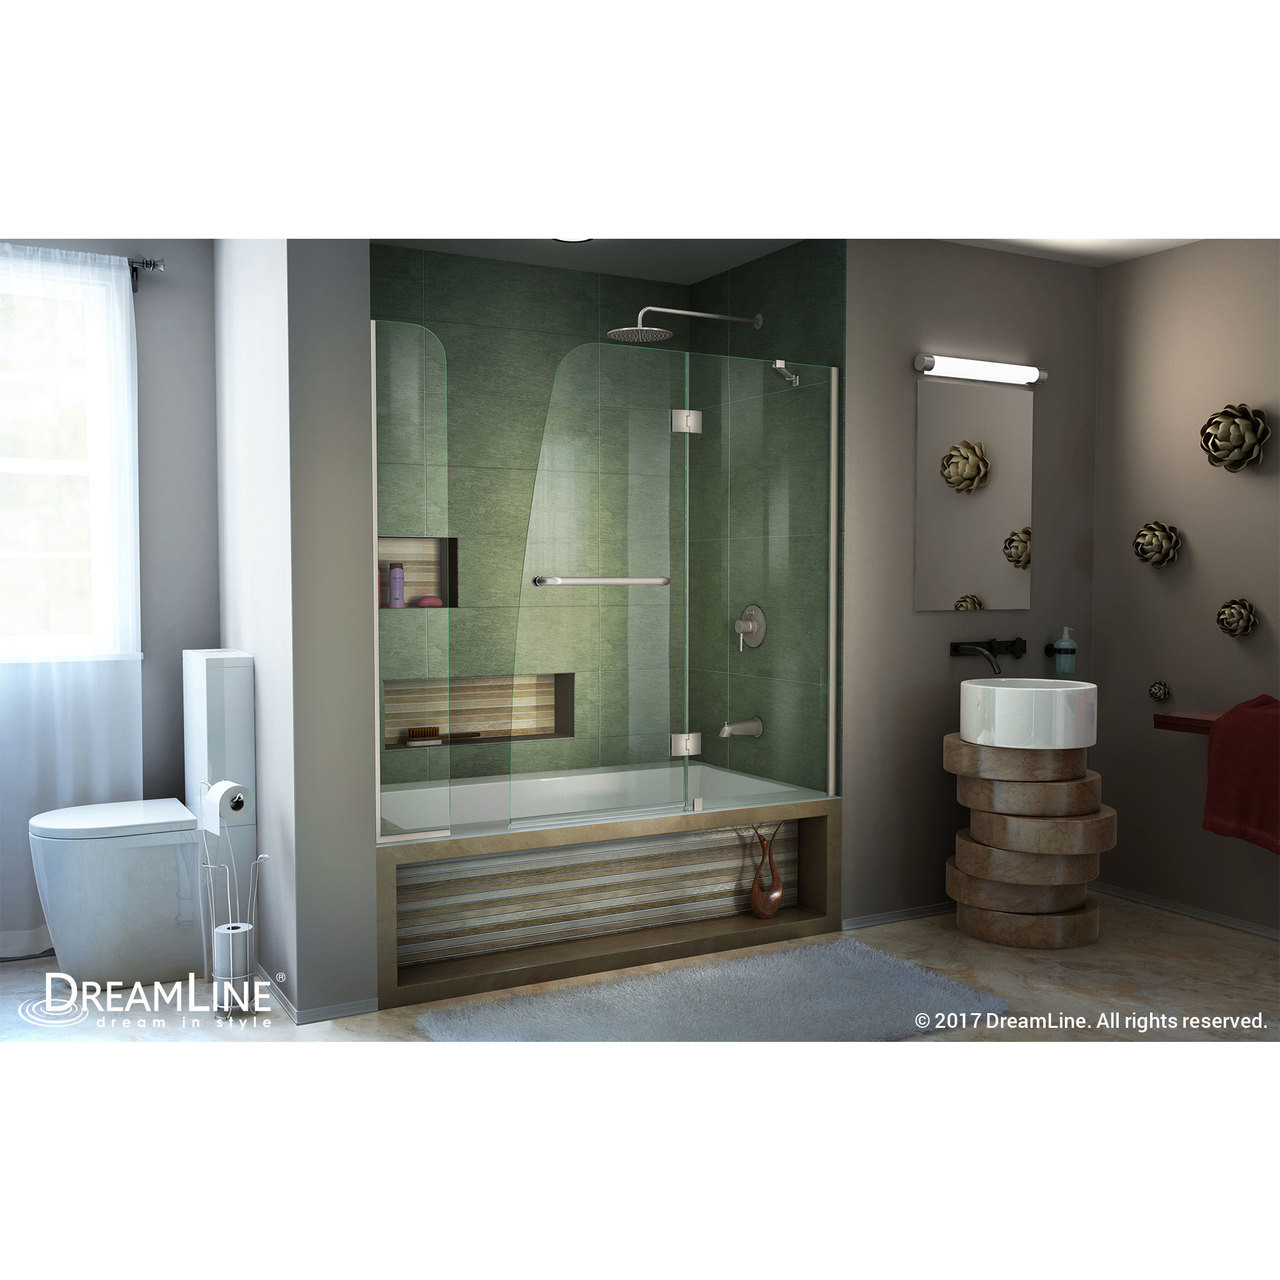 Dreamline Shdr 3148586 Ex 04 Aqua 56 60 In W X 58 In H Frameless Hinged Tub Door With Extender Panel In Brushed Nickel